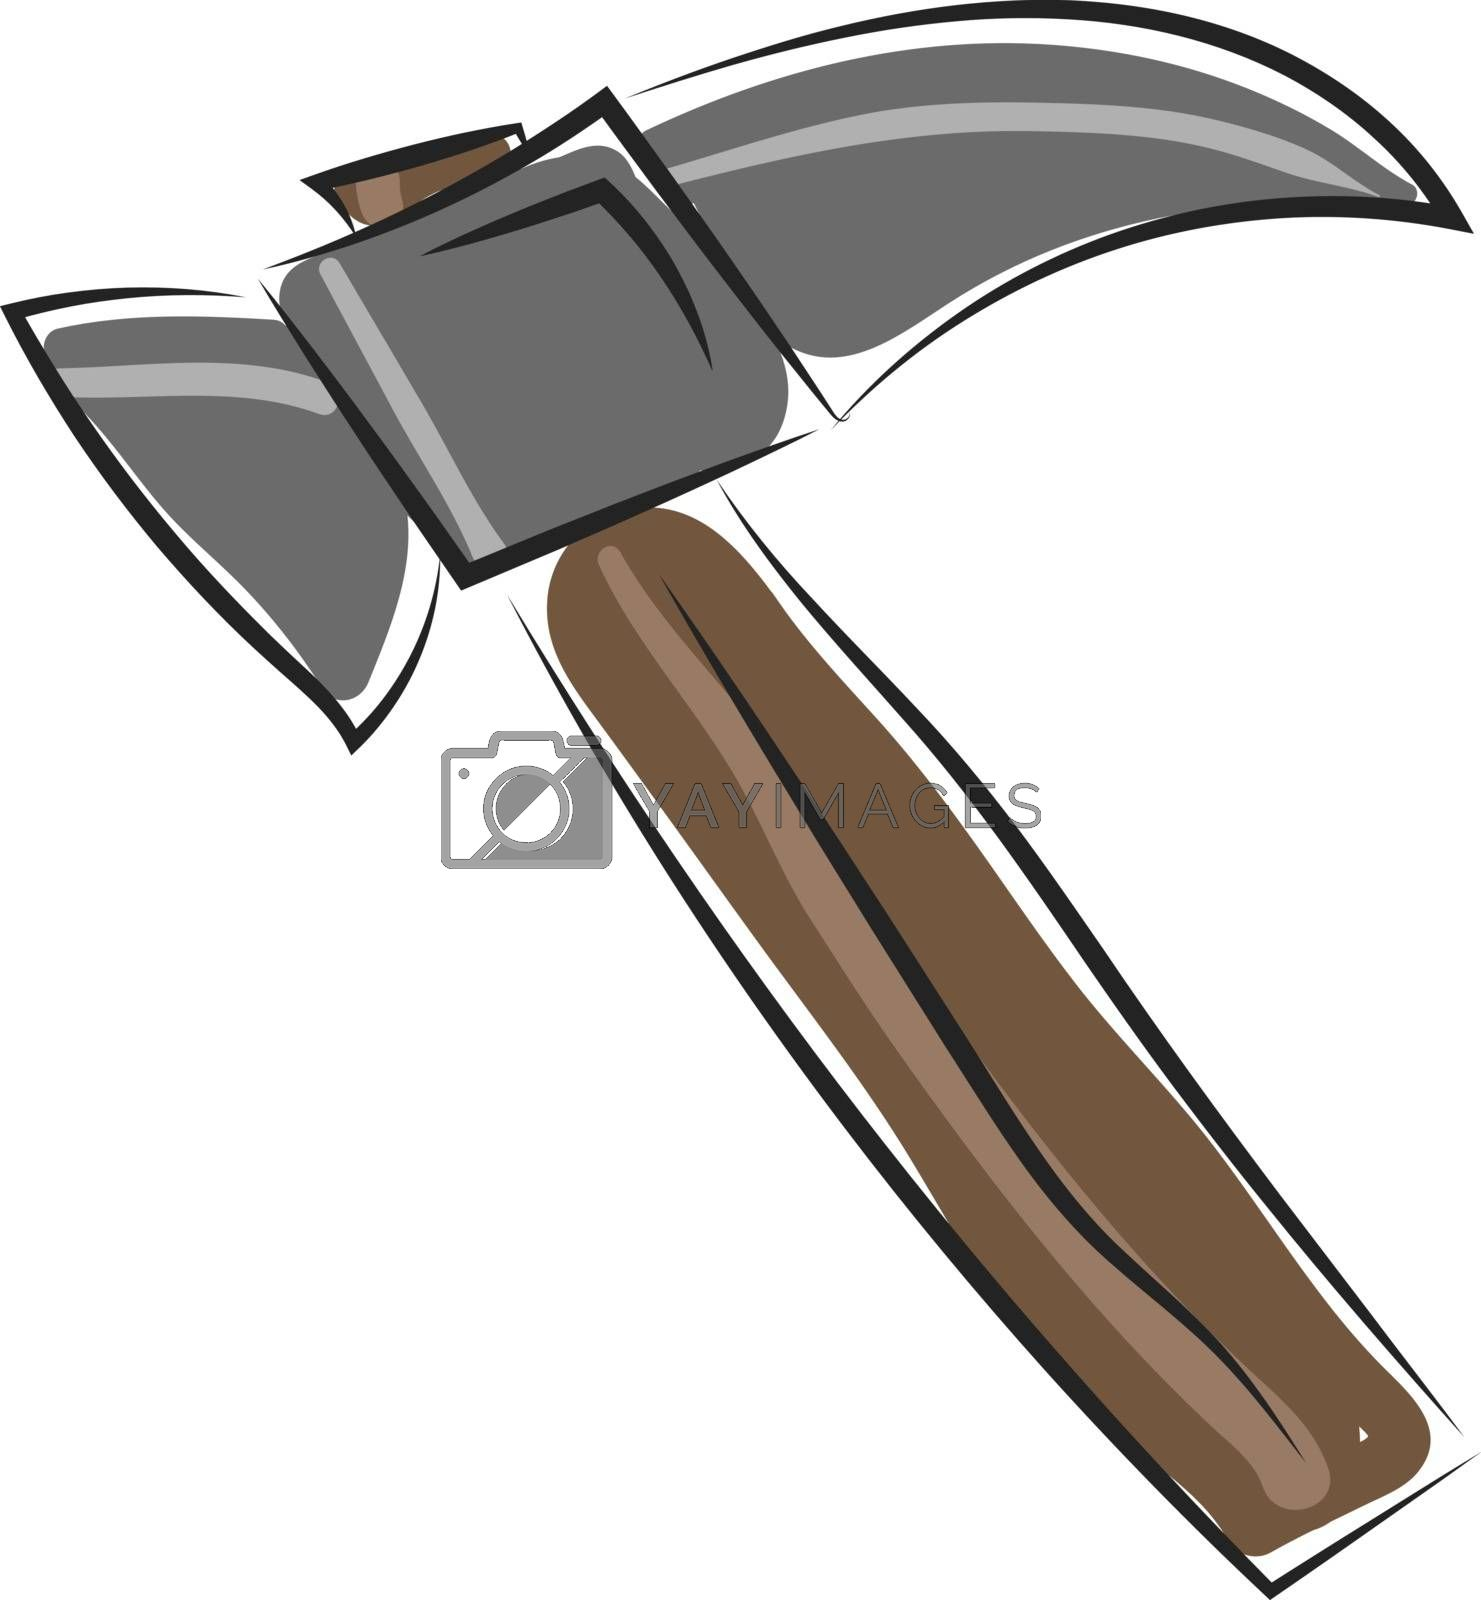 Royalty free image of Clipart of a brown hammer/Tool/Implement vector or color illustr by Morphart